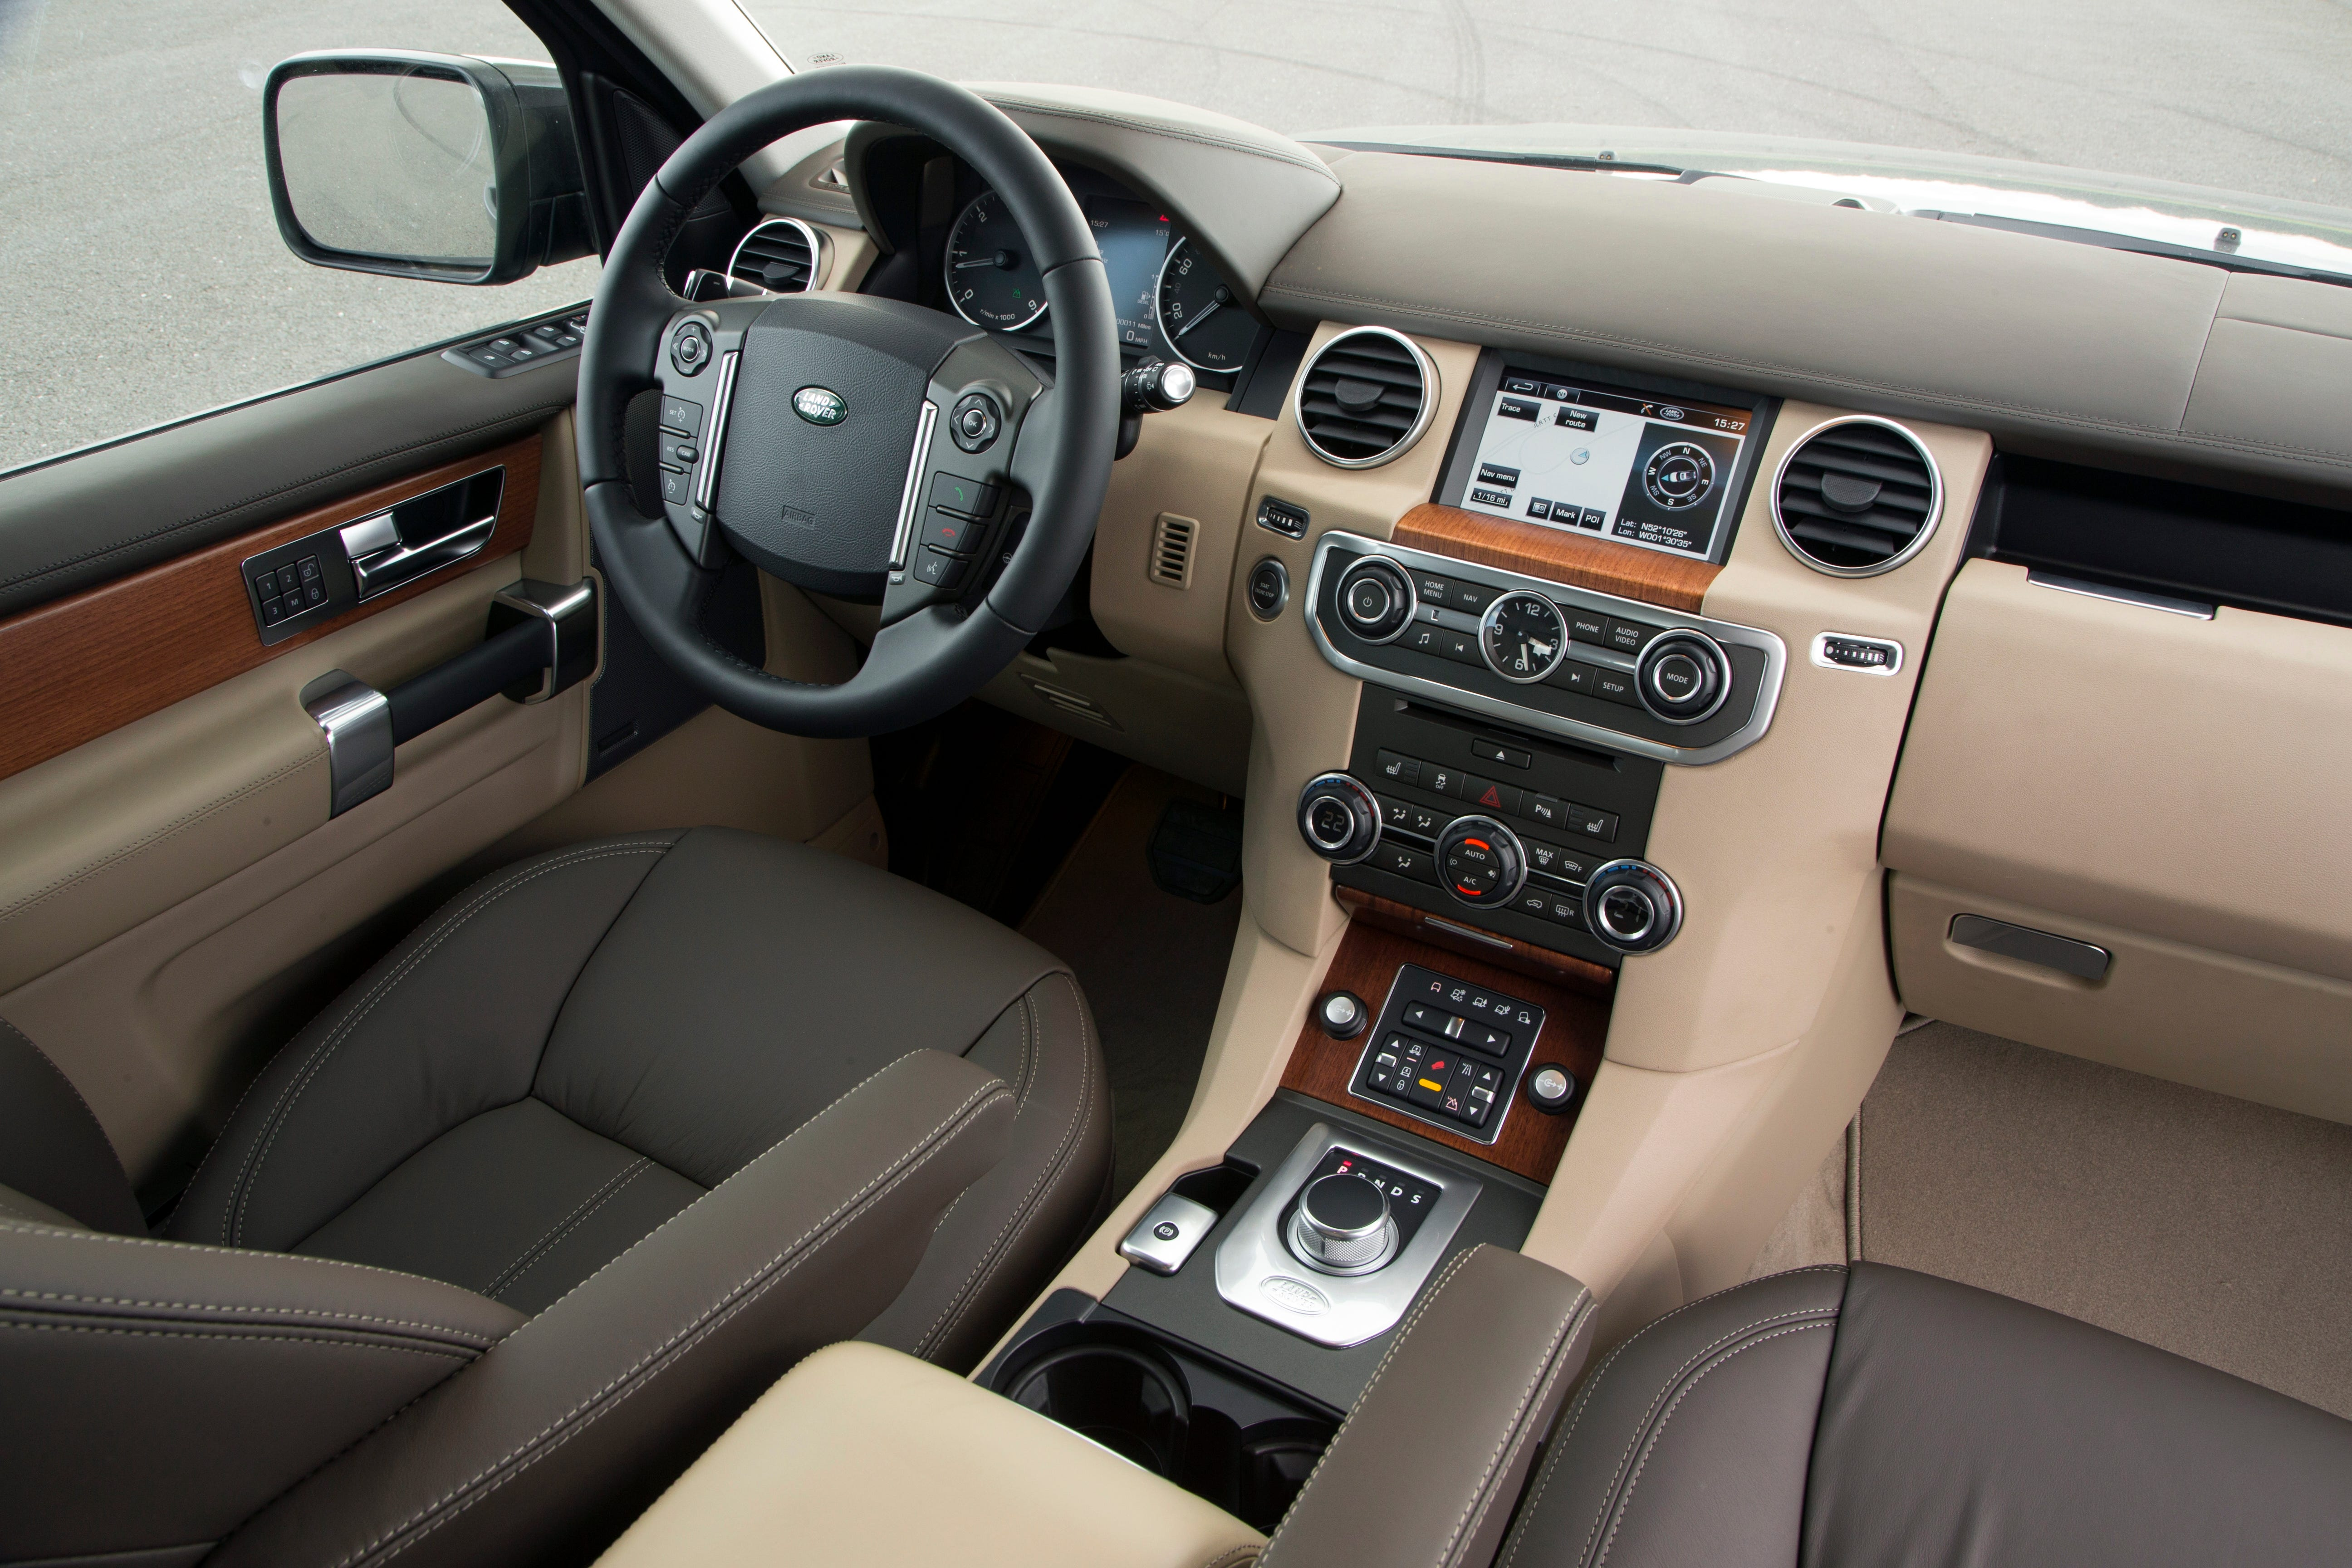 The Interior Of The Land Rover LR4 Is Leather Lined And Controlled With  Tri Zone Automatic Climate. Heated Front/rear Seats, Heated Steering Wheel,  ...